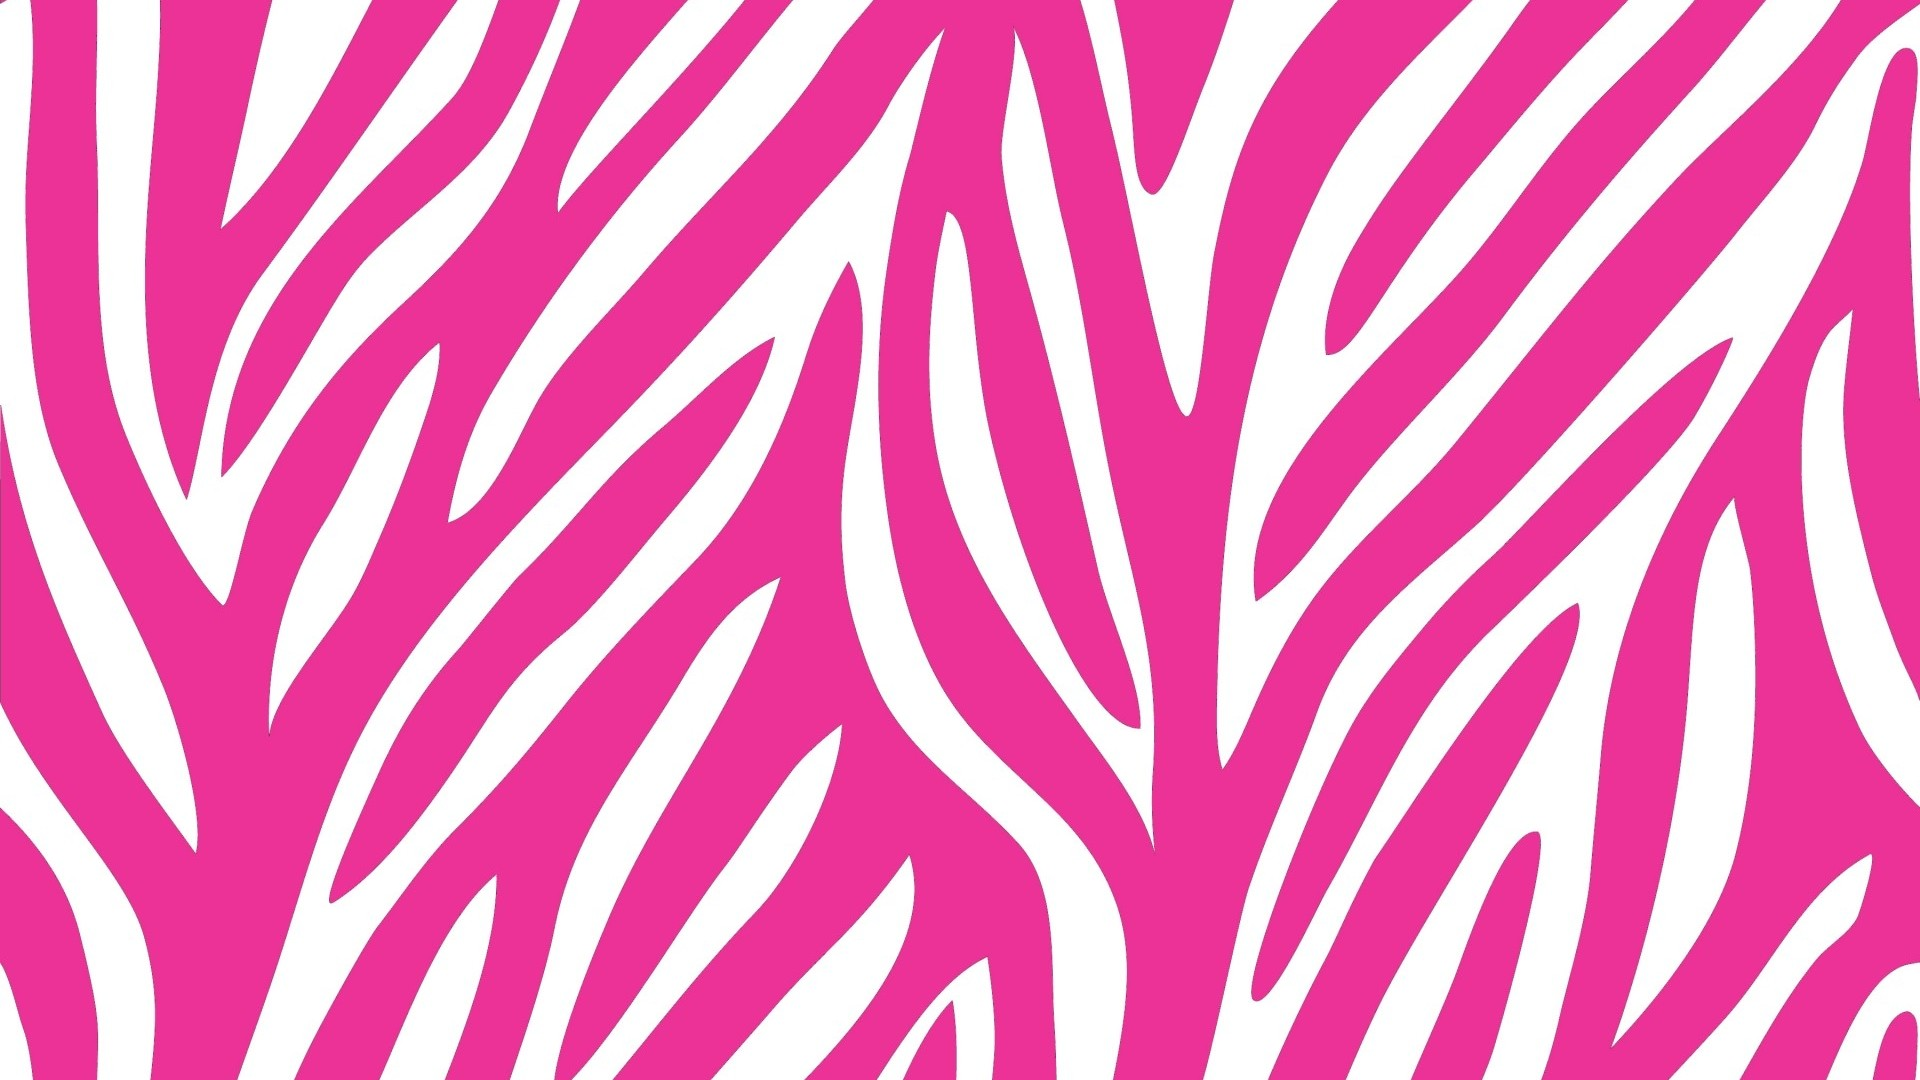 Vs pink wallpaper hd for 1234 get on the dance floor full hd video download